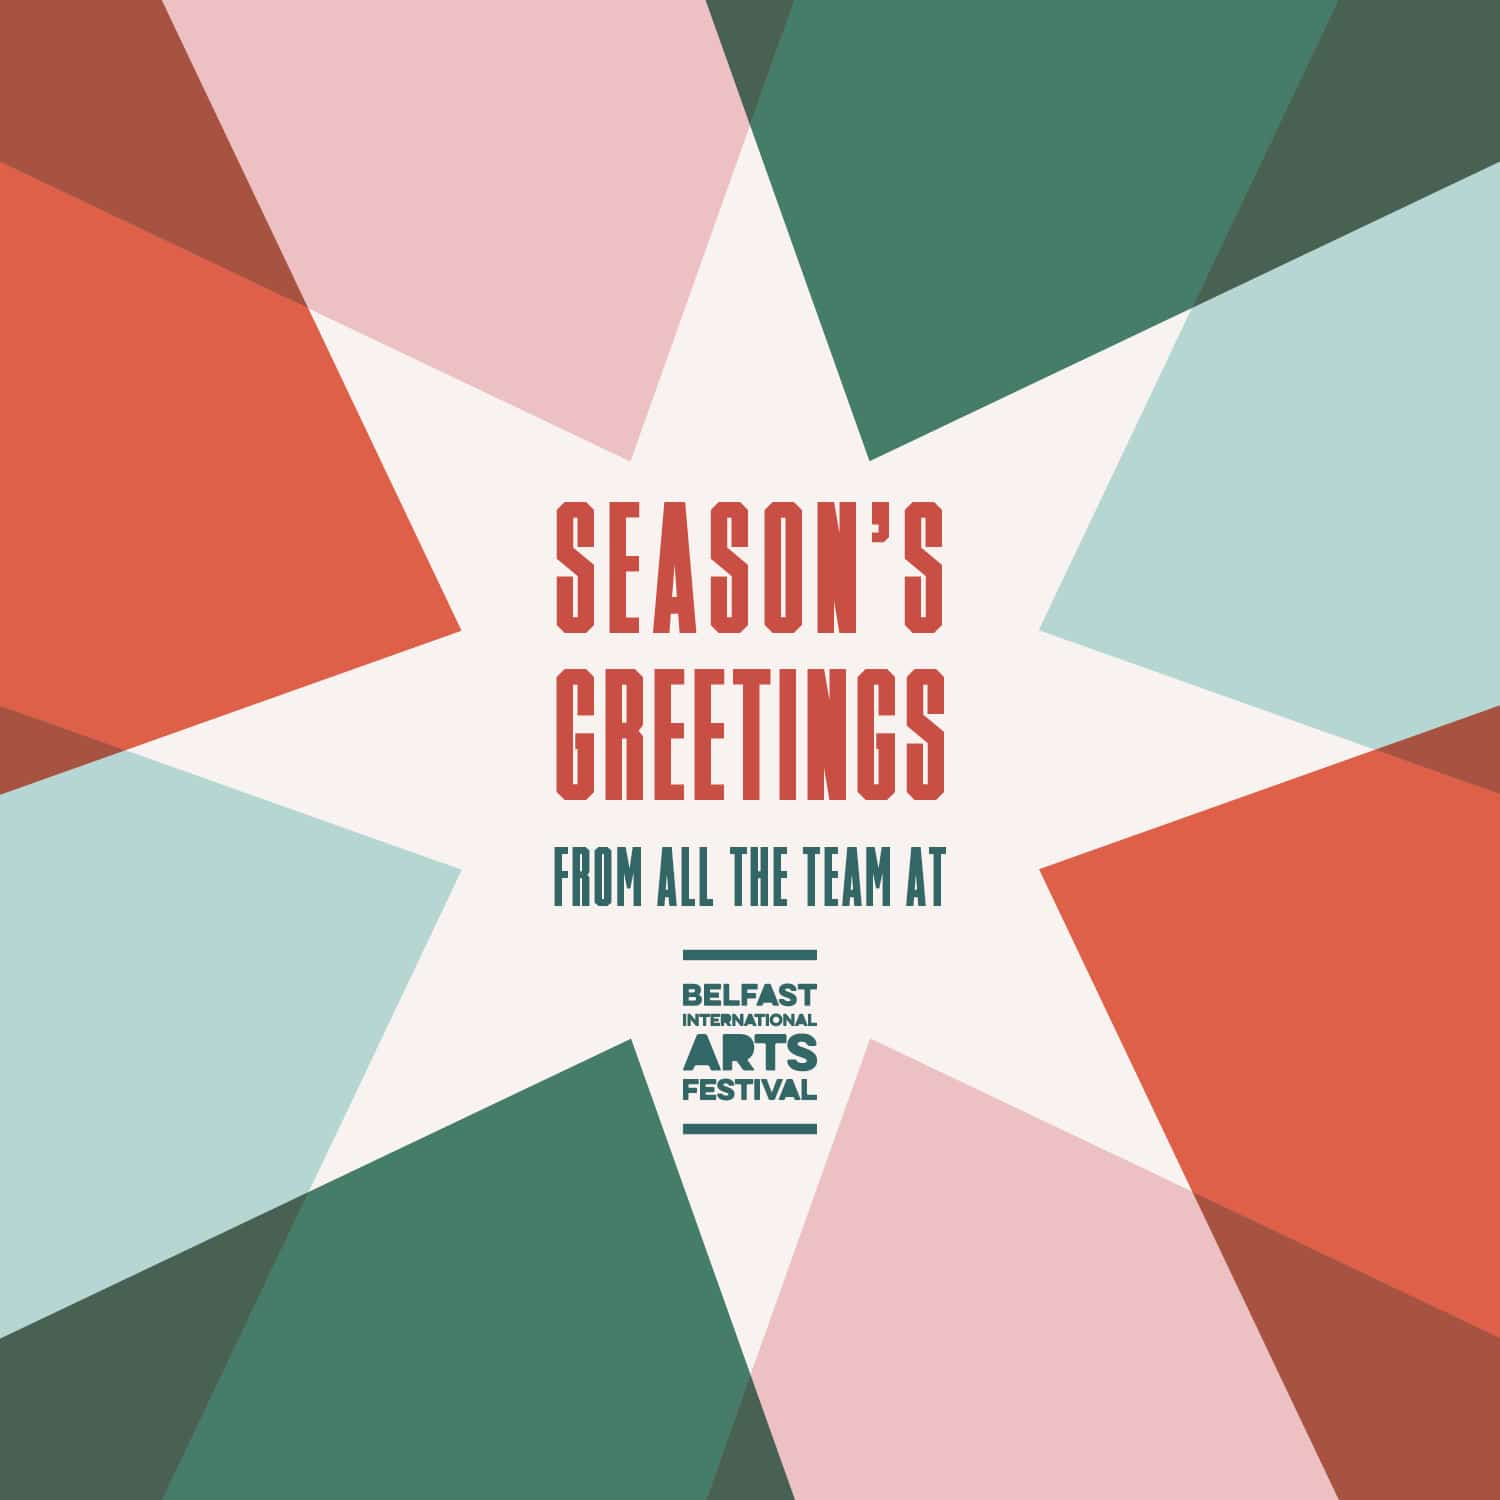 Seasons Greetings from all the team at Belfast International Arts Festival